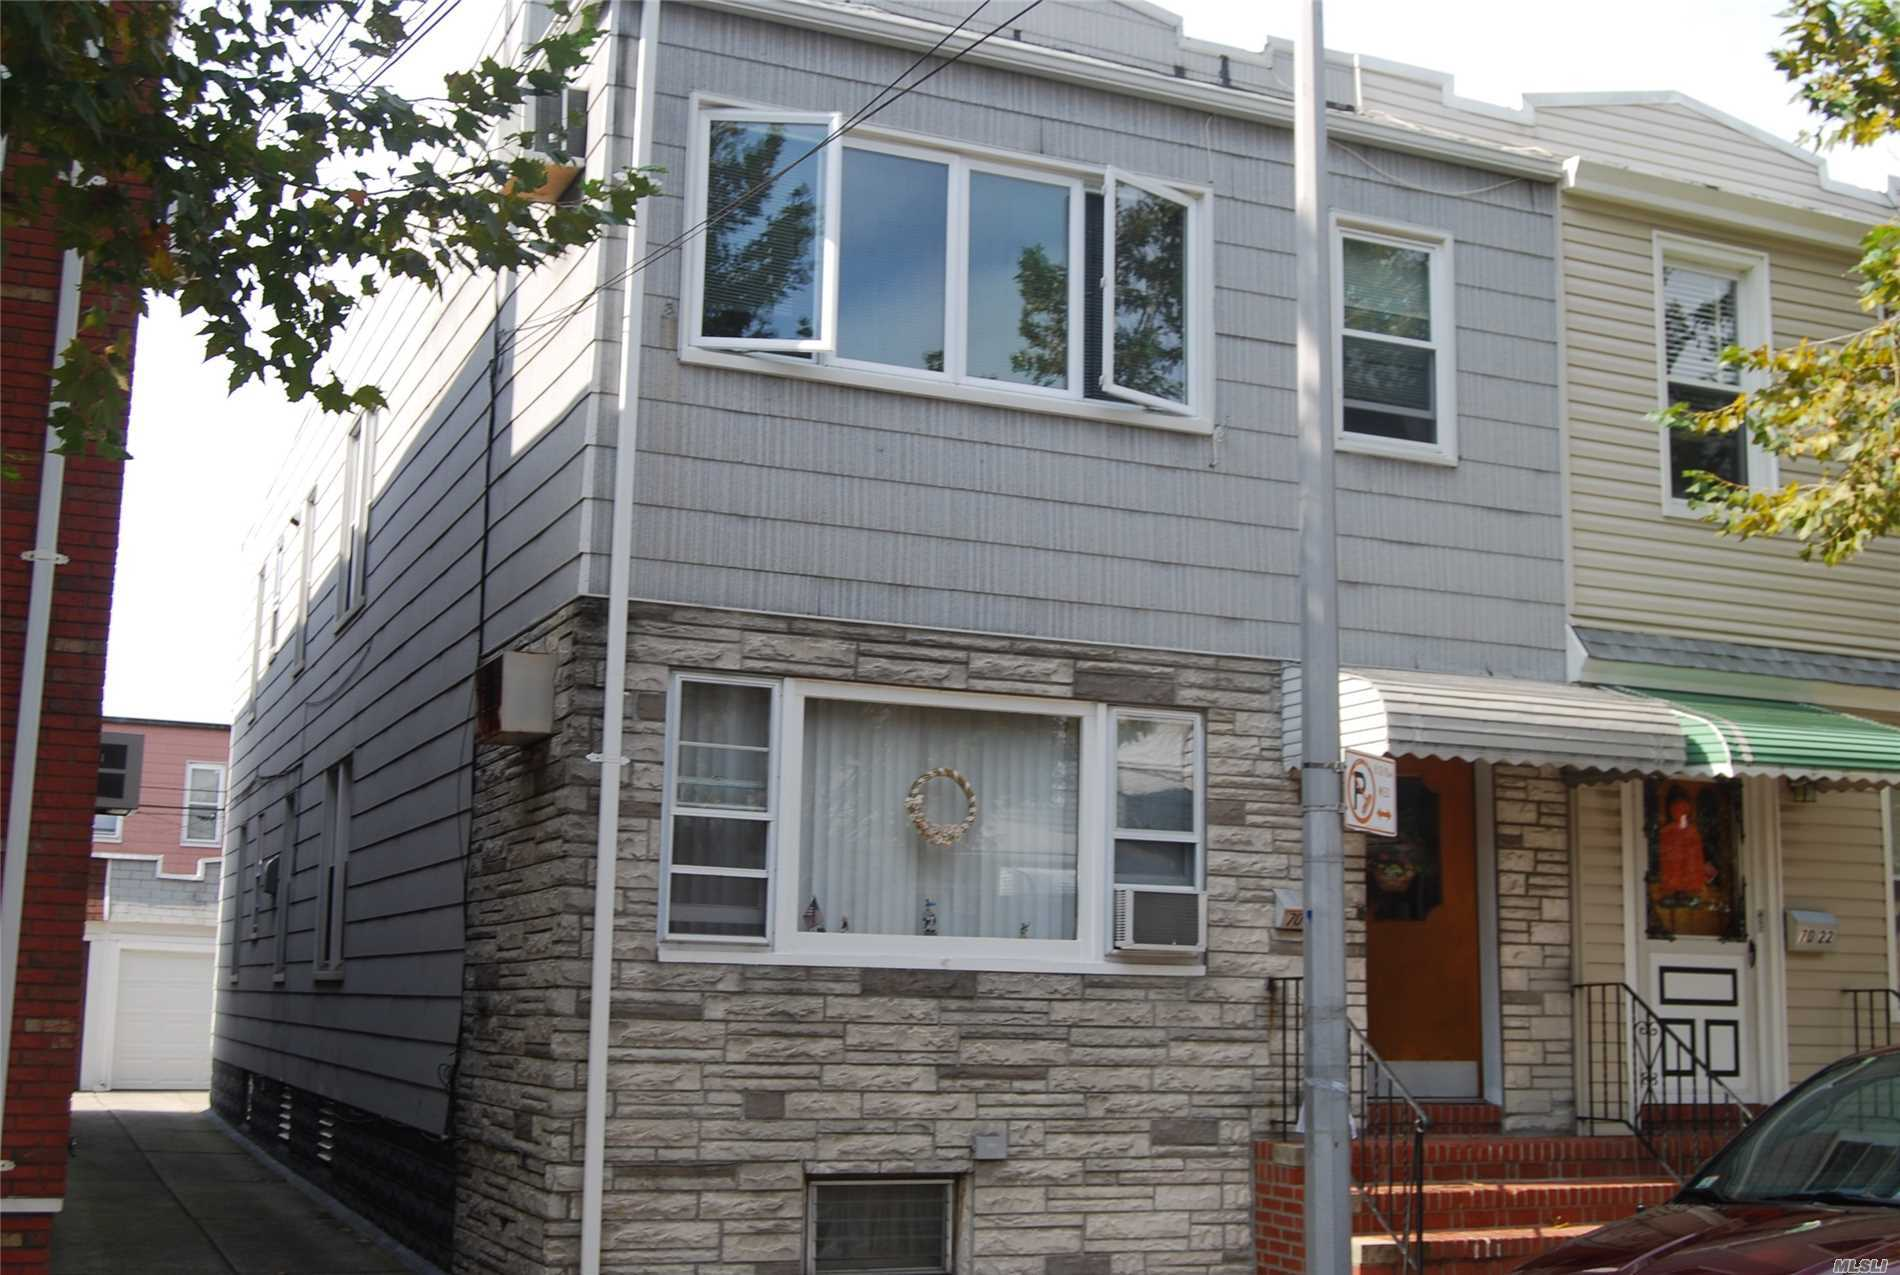 Well Maintained 2 Family Semi-Detached , 3 Bedrooms Over 2 Bedrooms With Finished Basement, 2 Car Garage , Hardwood Floors , , Garage Door And Roof Of Garage Is New, Heating System Is Close To New, Near Shopping And Transportation, Will Be Delivered Vacant